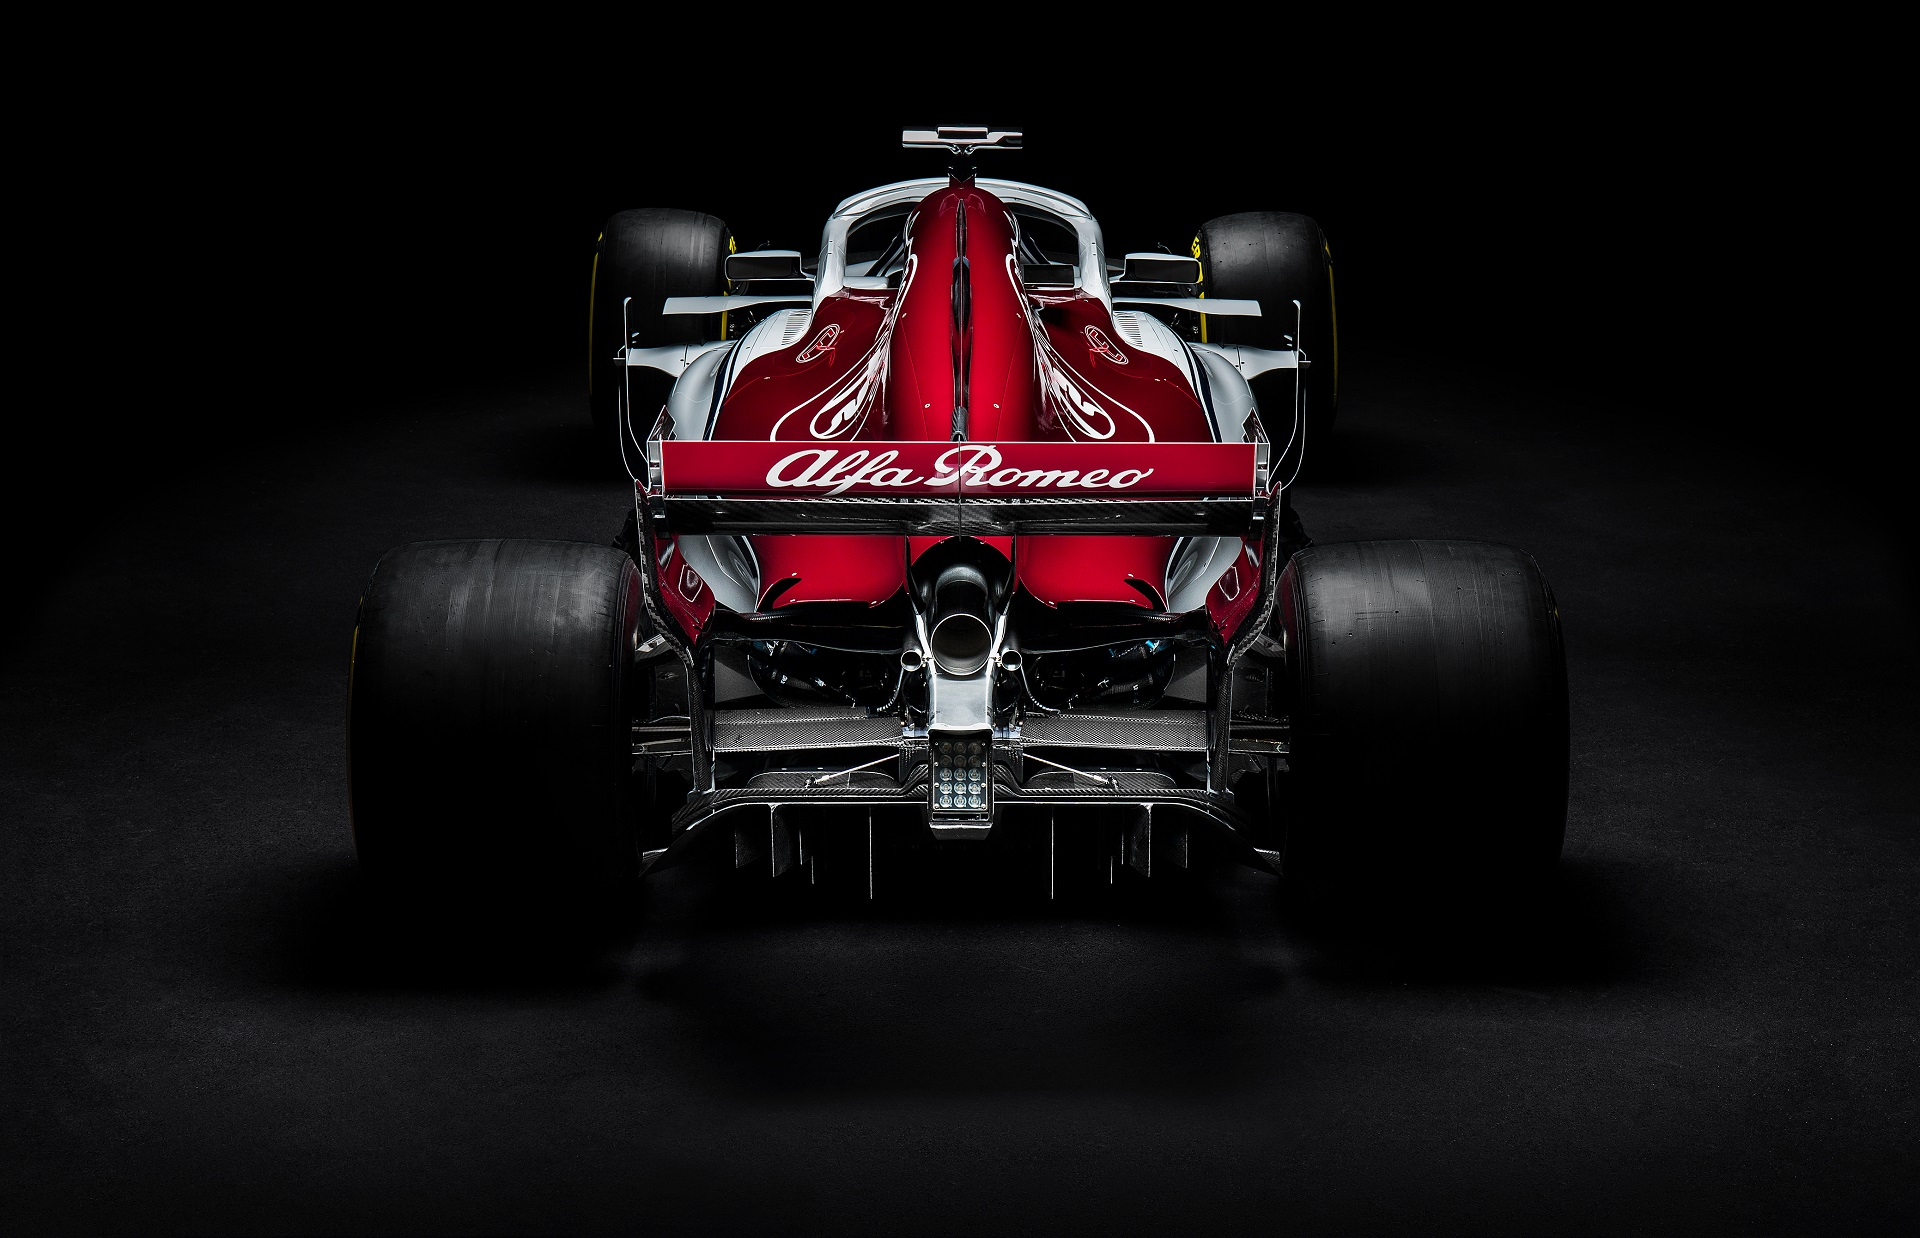 AlfaRomeo_rear_high